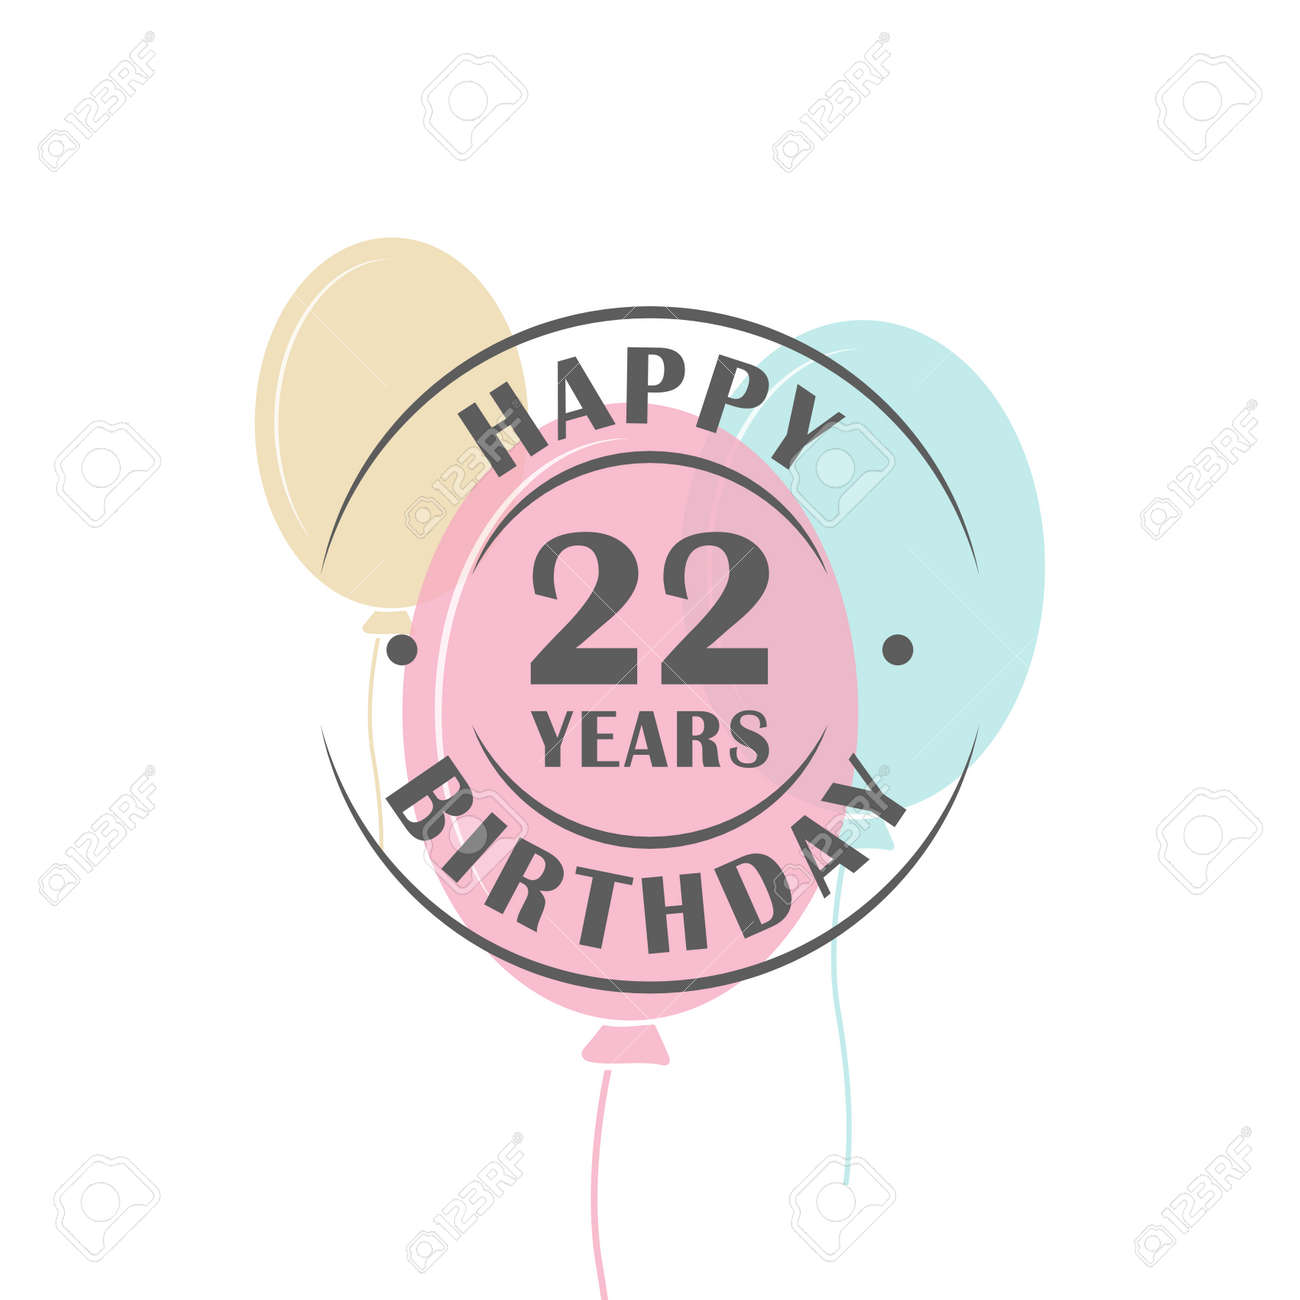 happy birthday 22 years round logo with festive balloons greeting